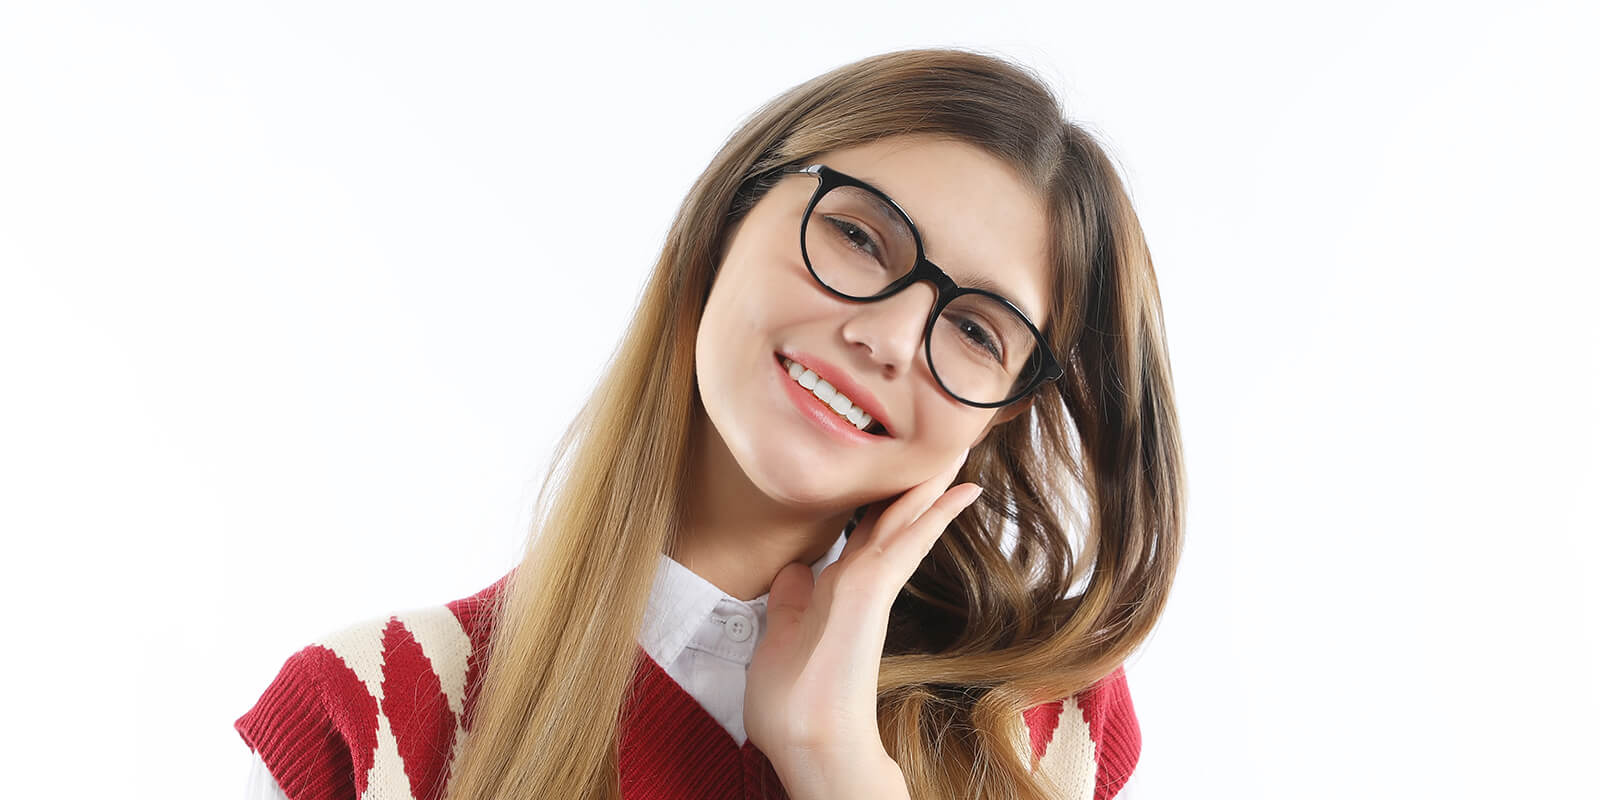 Starlight-Retro round glasses with built-in spring hinge